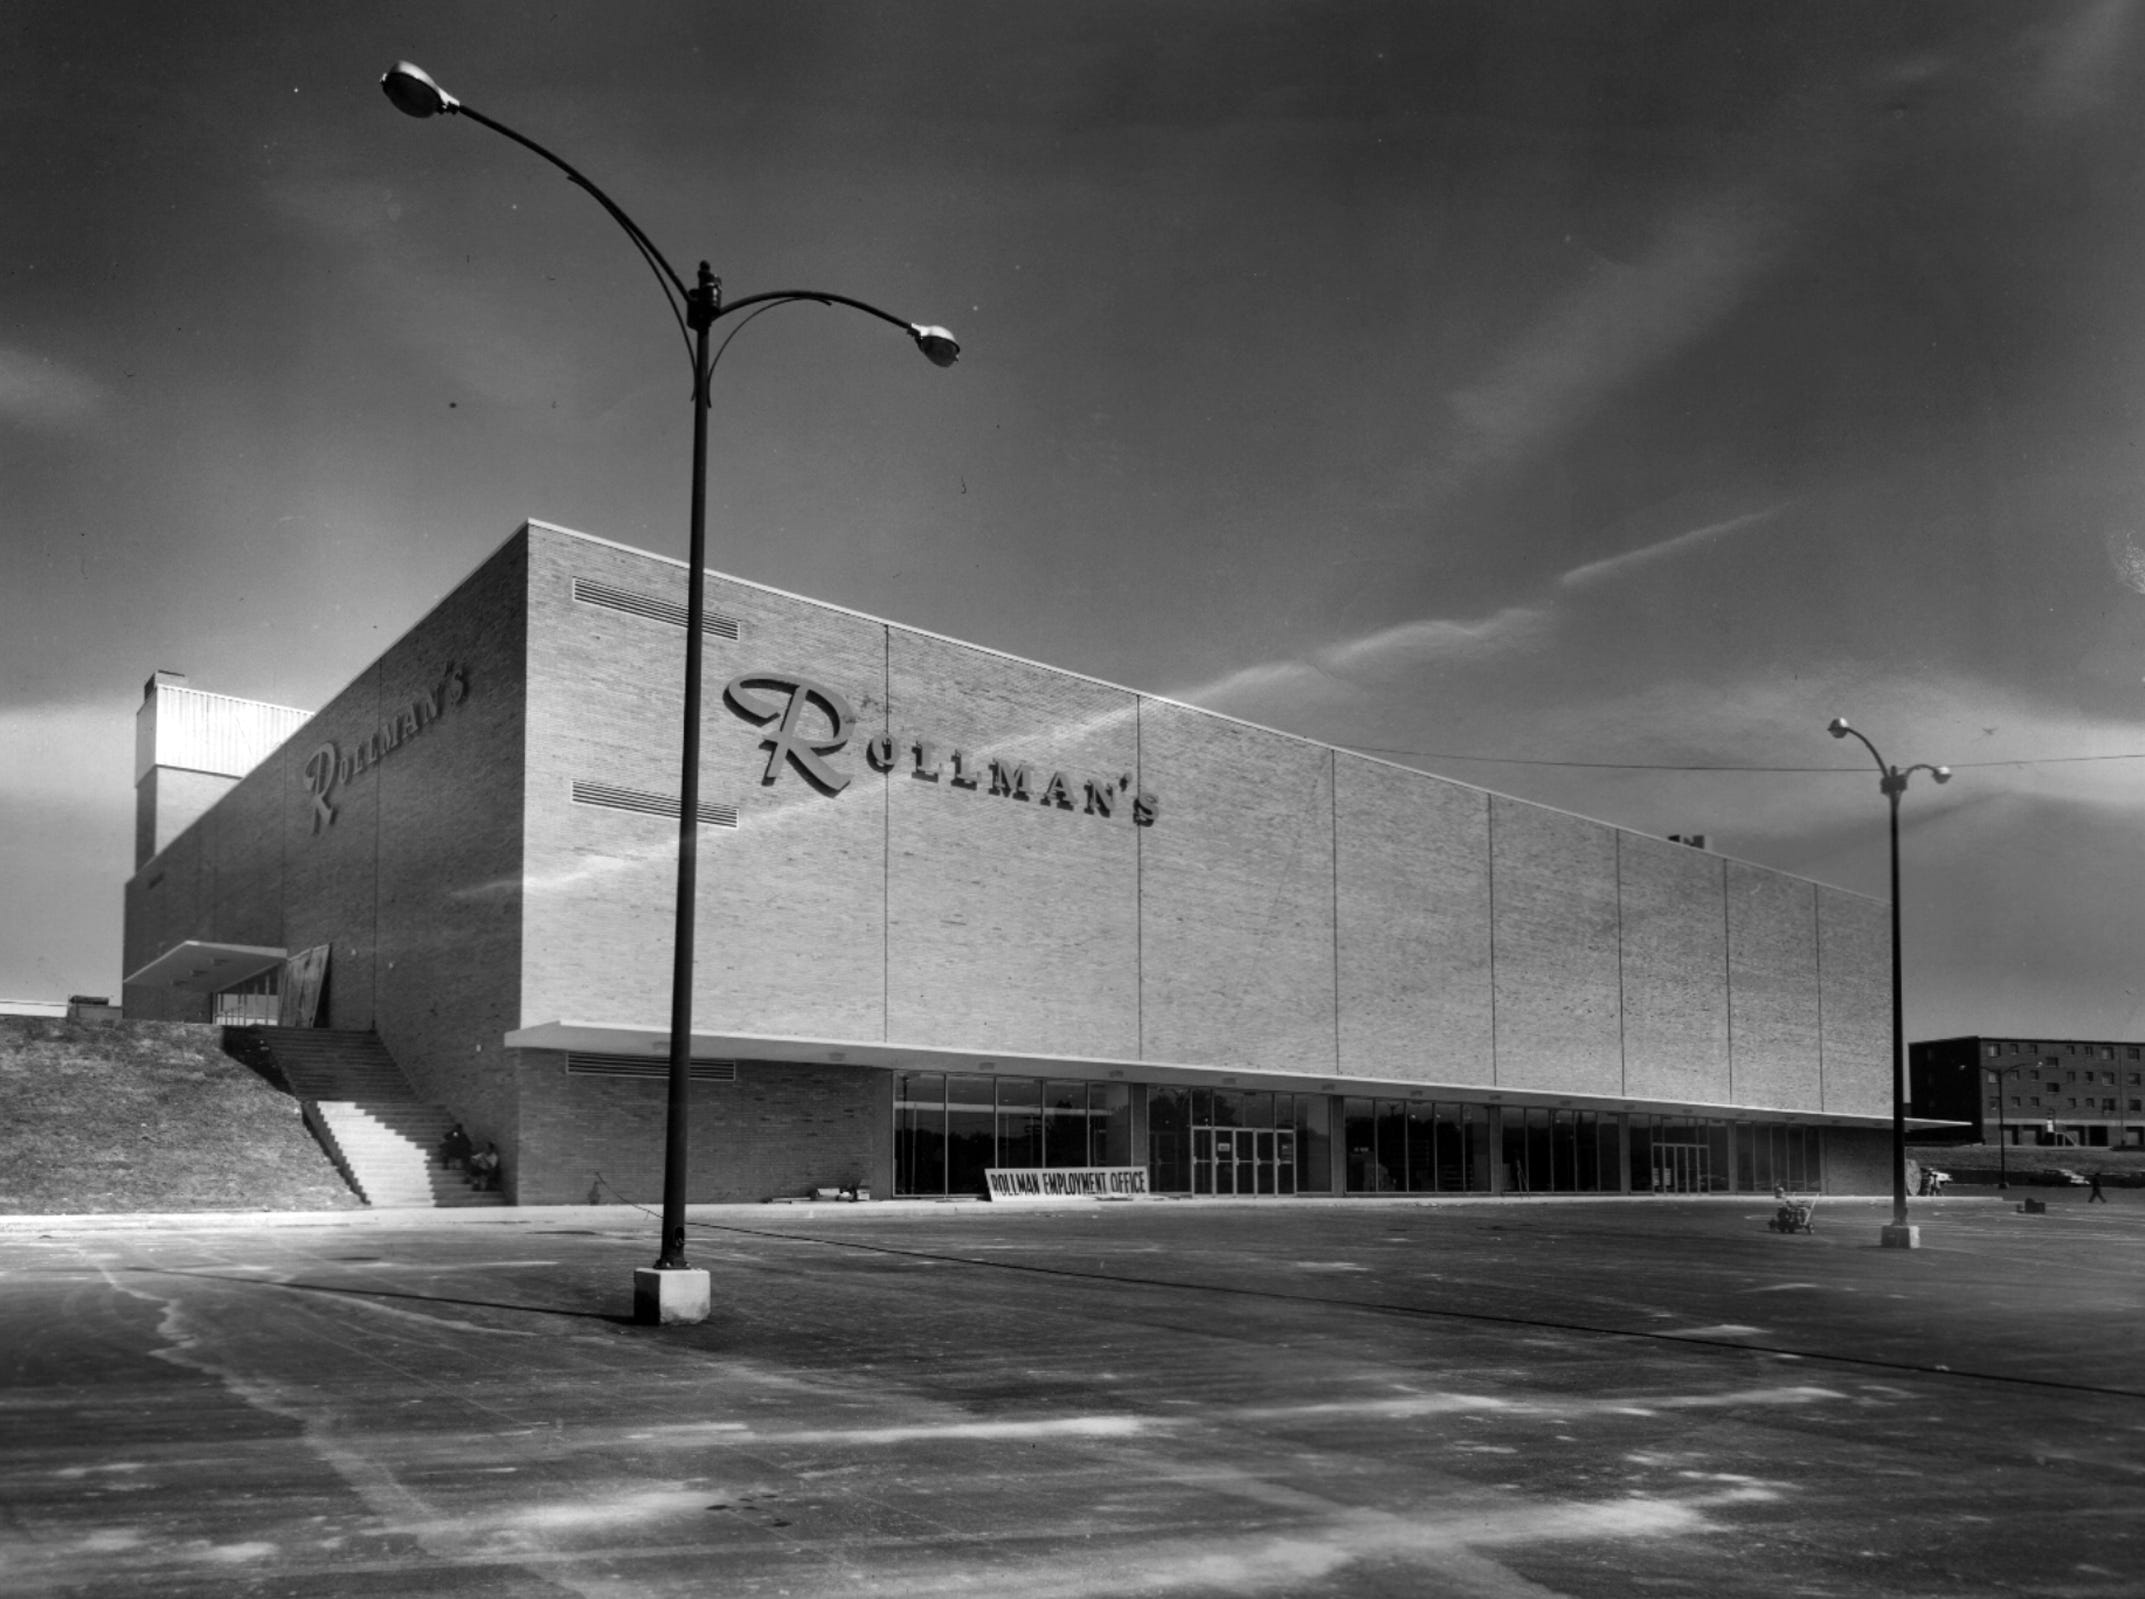 The 12-story Rollman's building on the corner opened in 1923, and expanded into the Havlin Hotel next door in 1947. Allied Stores Corp. purchased both Rollman's and Mabley & Carew, and in 1962 moved Mabley & Carew into the Rollman's space. This Rollman's was located at Swifton Center.